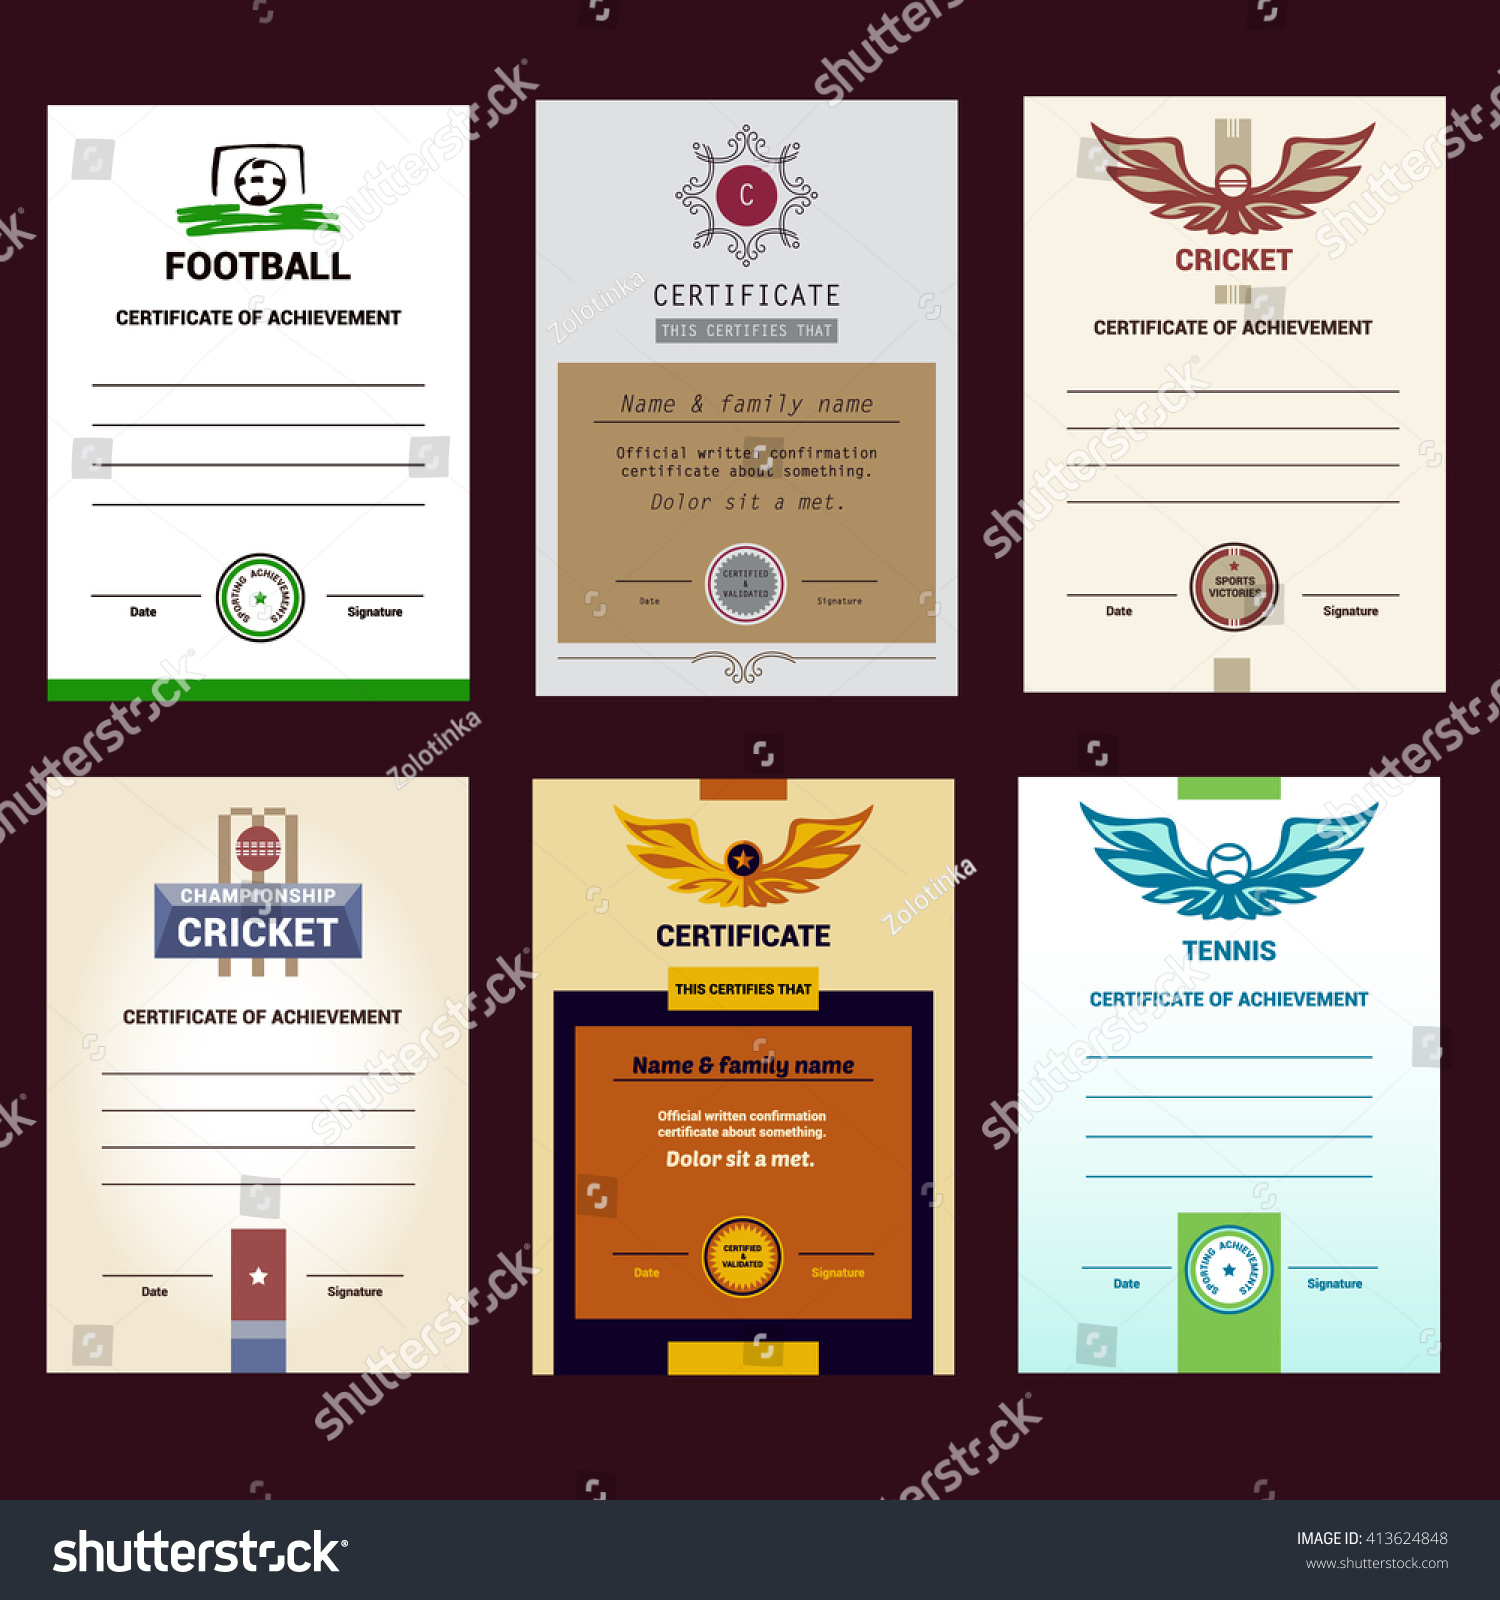 Fine tennis certificate template contemporary example resume and set vector template certificate modern design stock vector alramifo Image collections